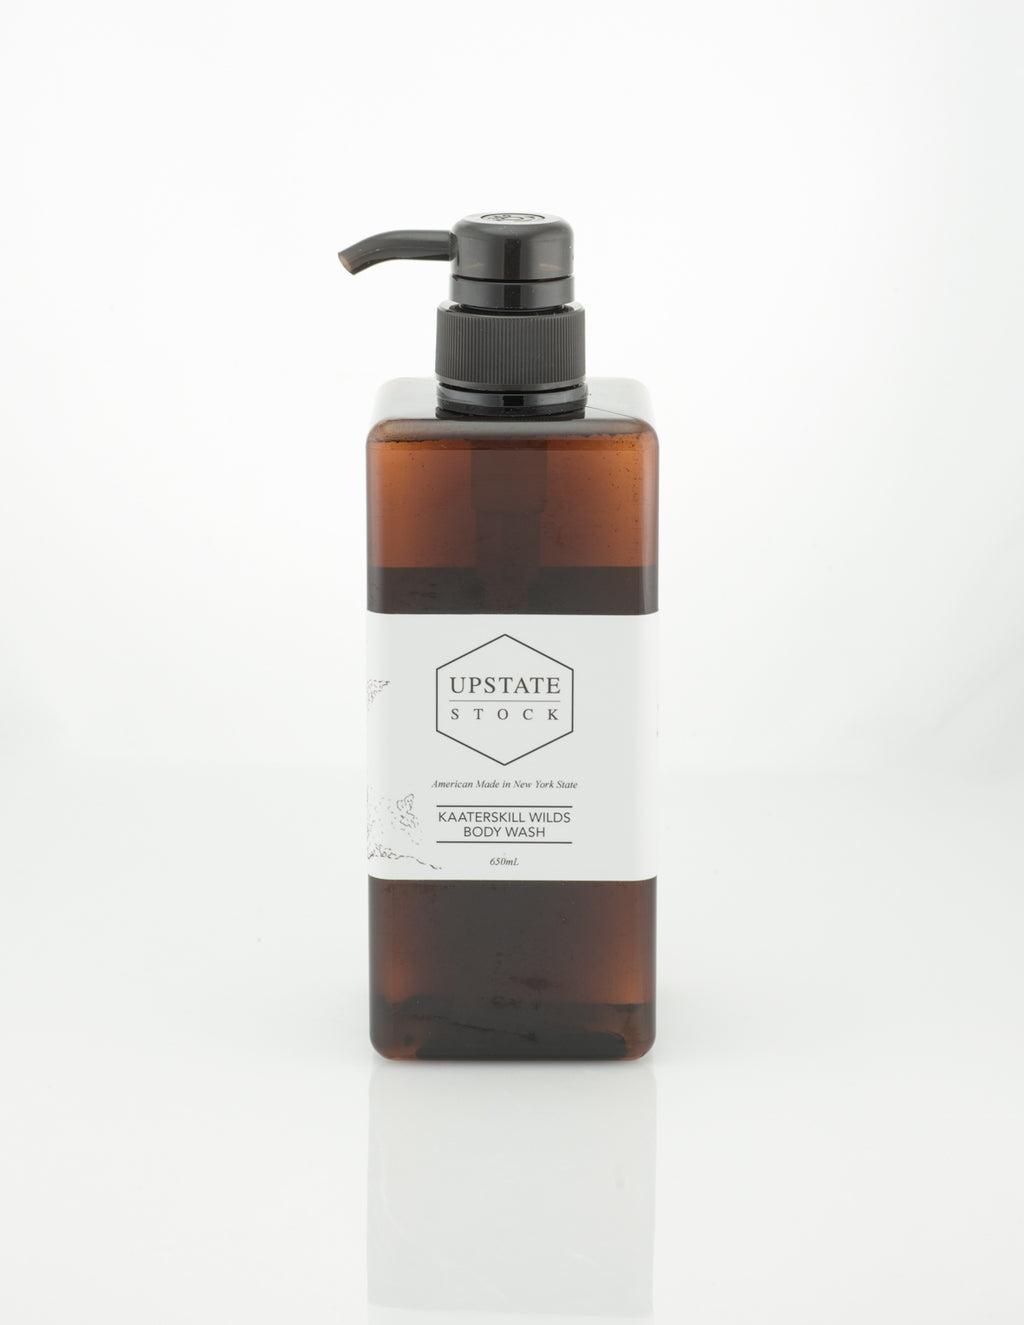 Upstate Stock - Kaaterskill Wilds Body Wash